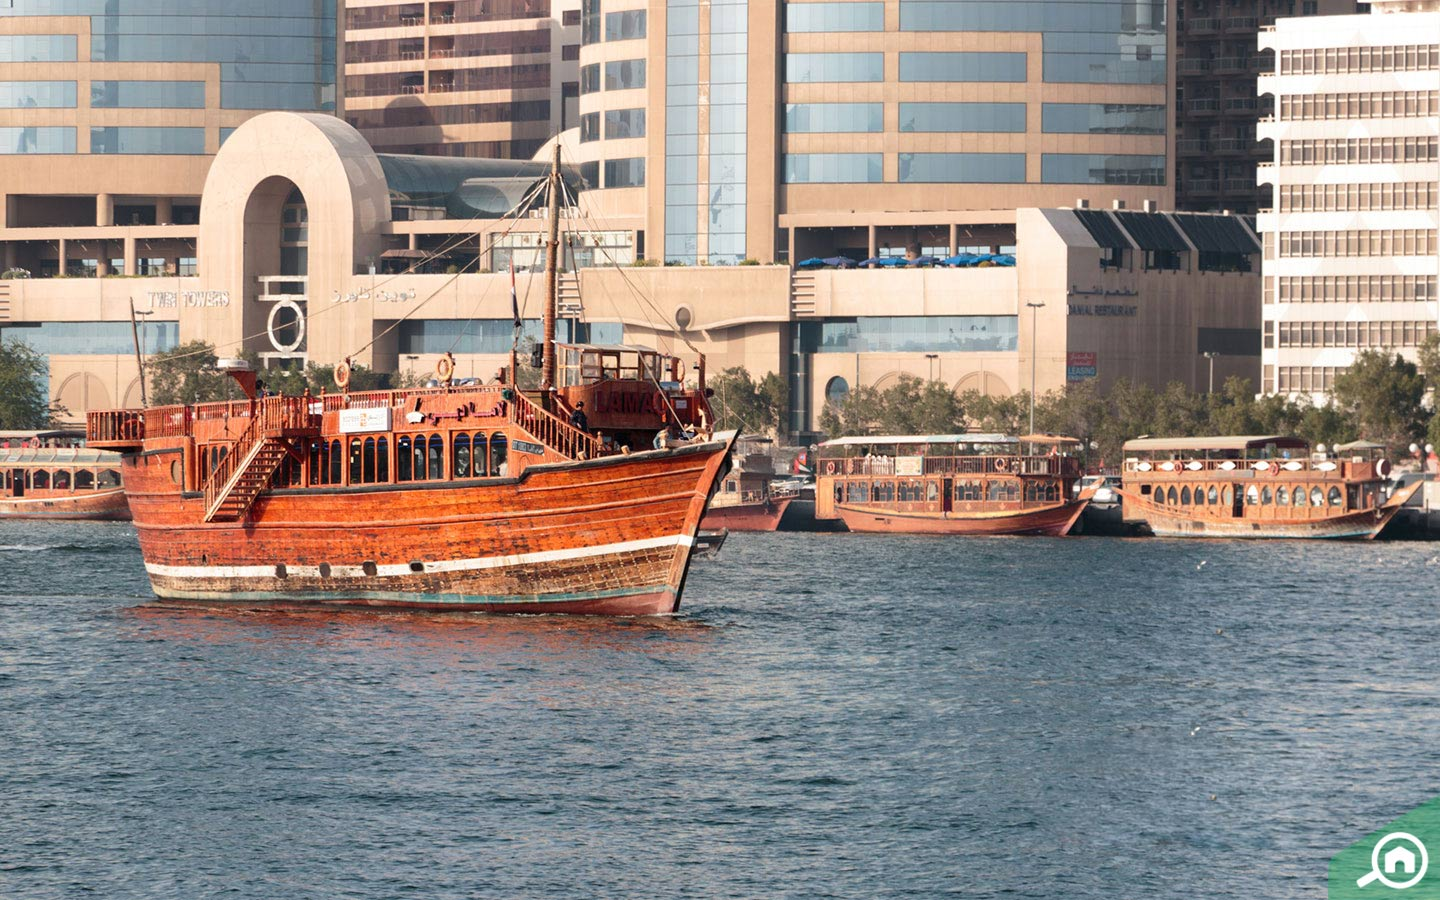 The Dubai creek seen from Al Seef is one of the must see things to do in Dubai for parents visiting